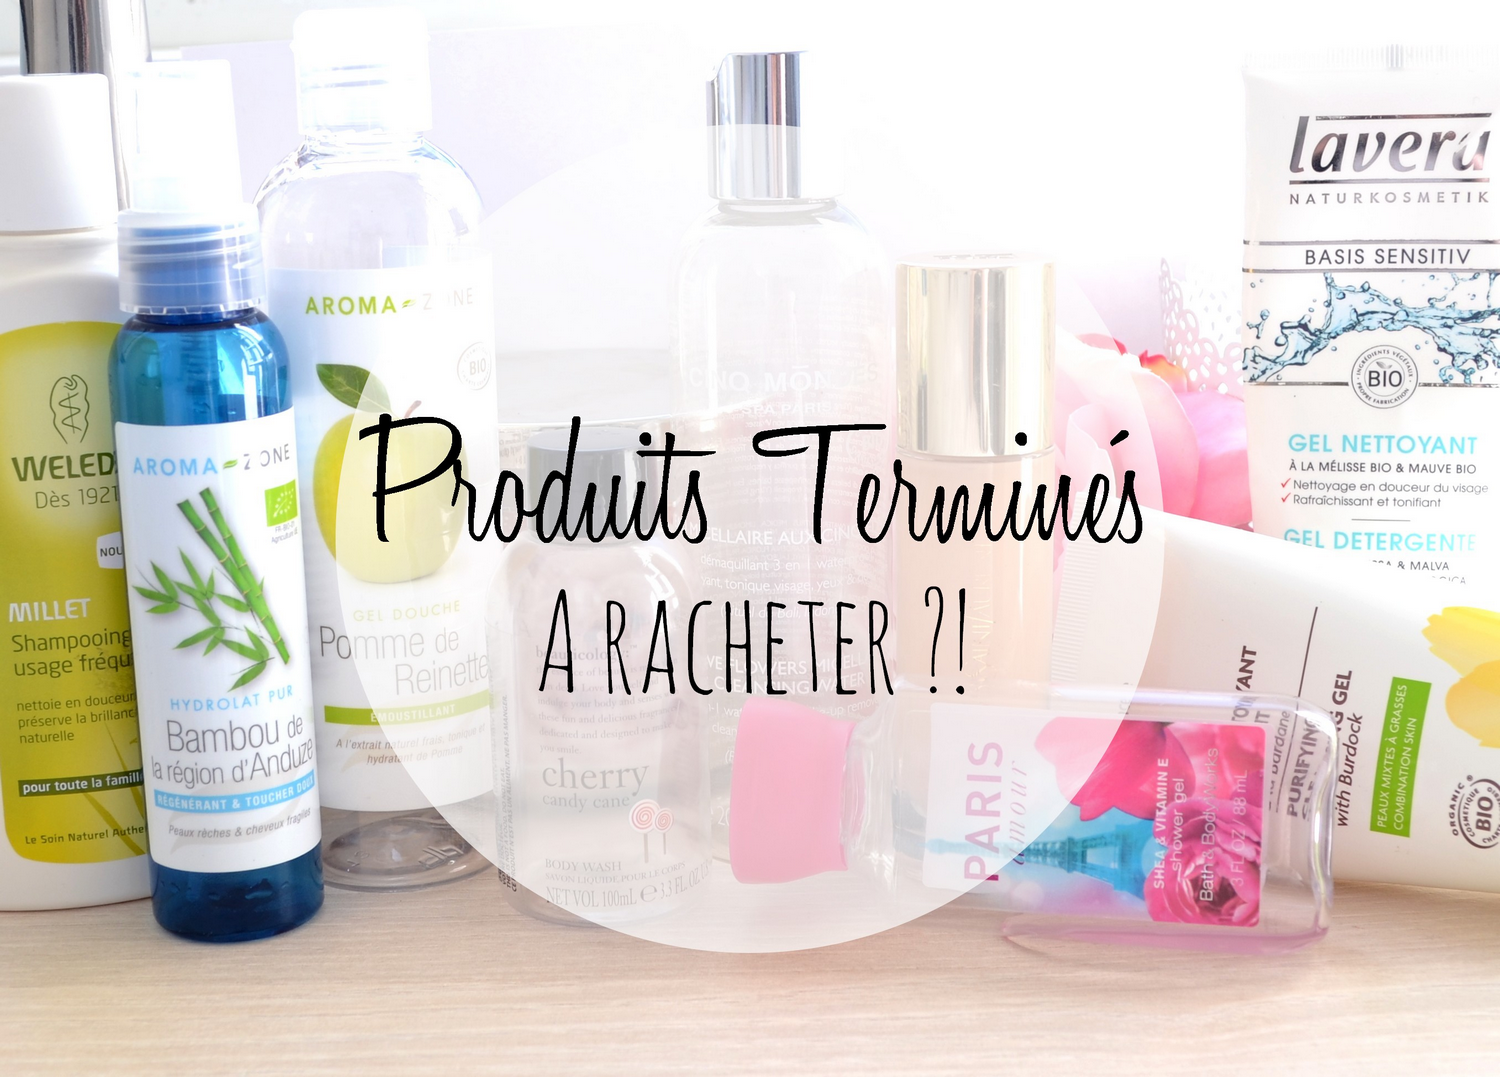 http://www.dreamingsmoothly.com/2015/03/produits-termines-racheter-5.html